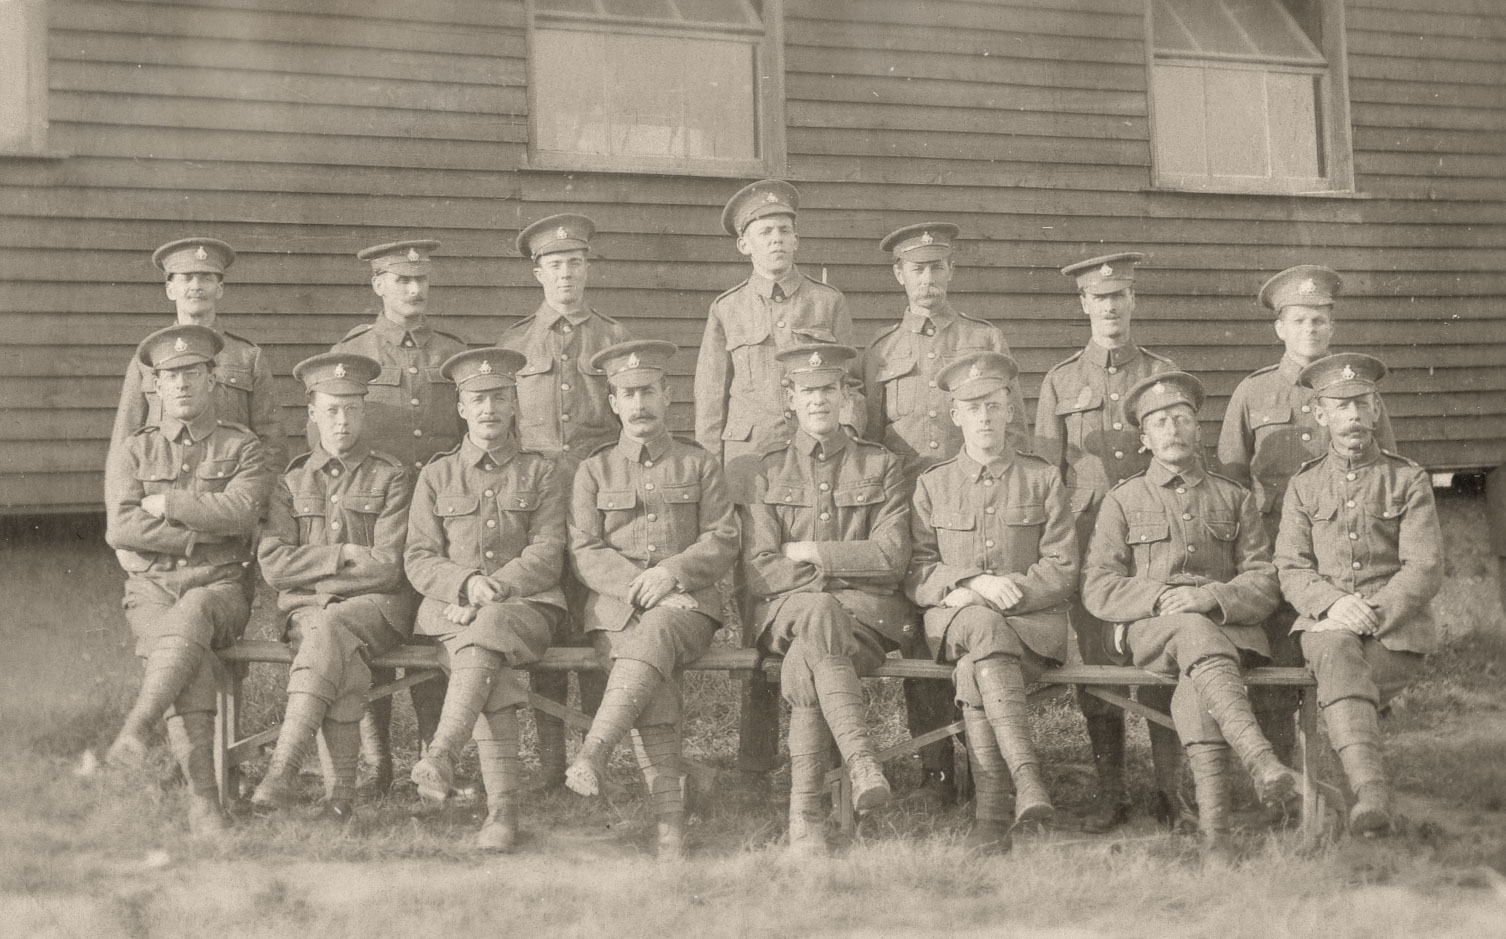 Unrestored version of the Foirst World War Soldiers picture